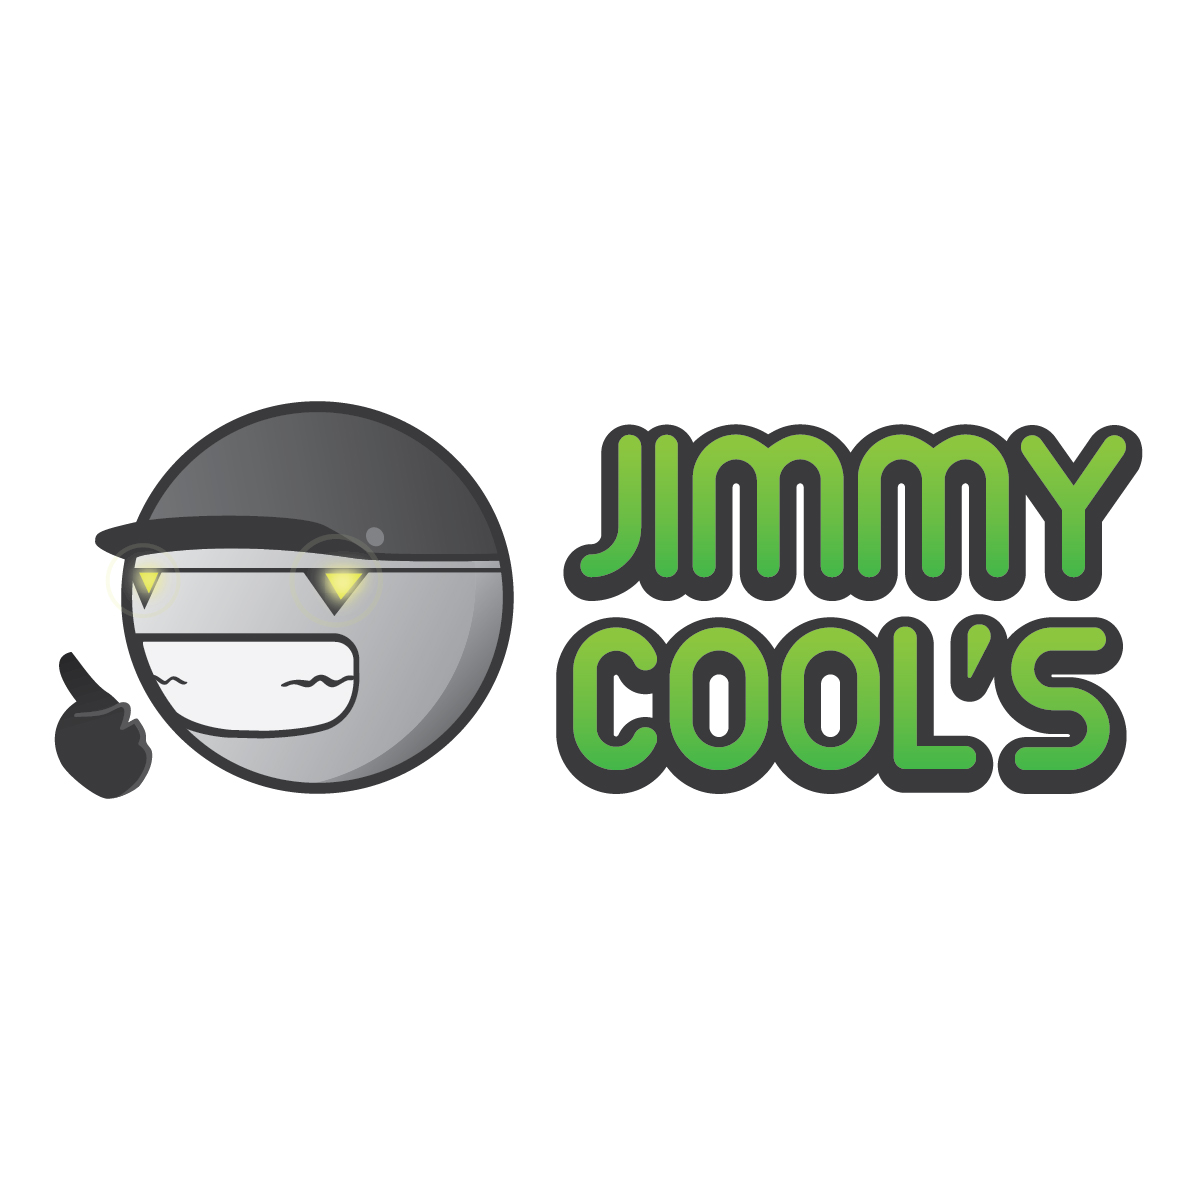 Logo Design by Alex-Alvarez - Entry No. 25 in the Logo Design Contest Jimmy Cool's.